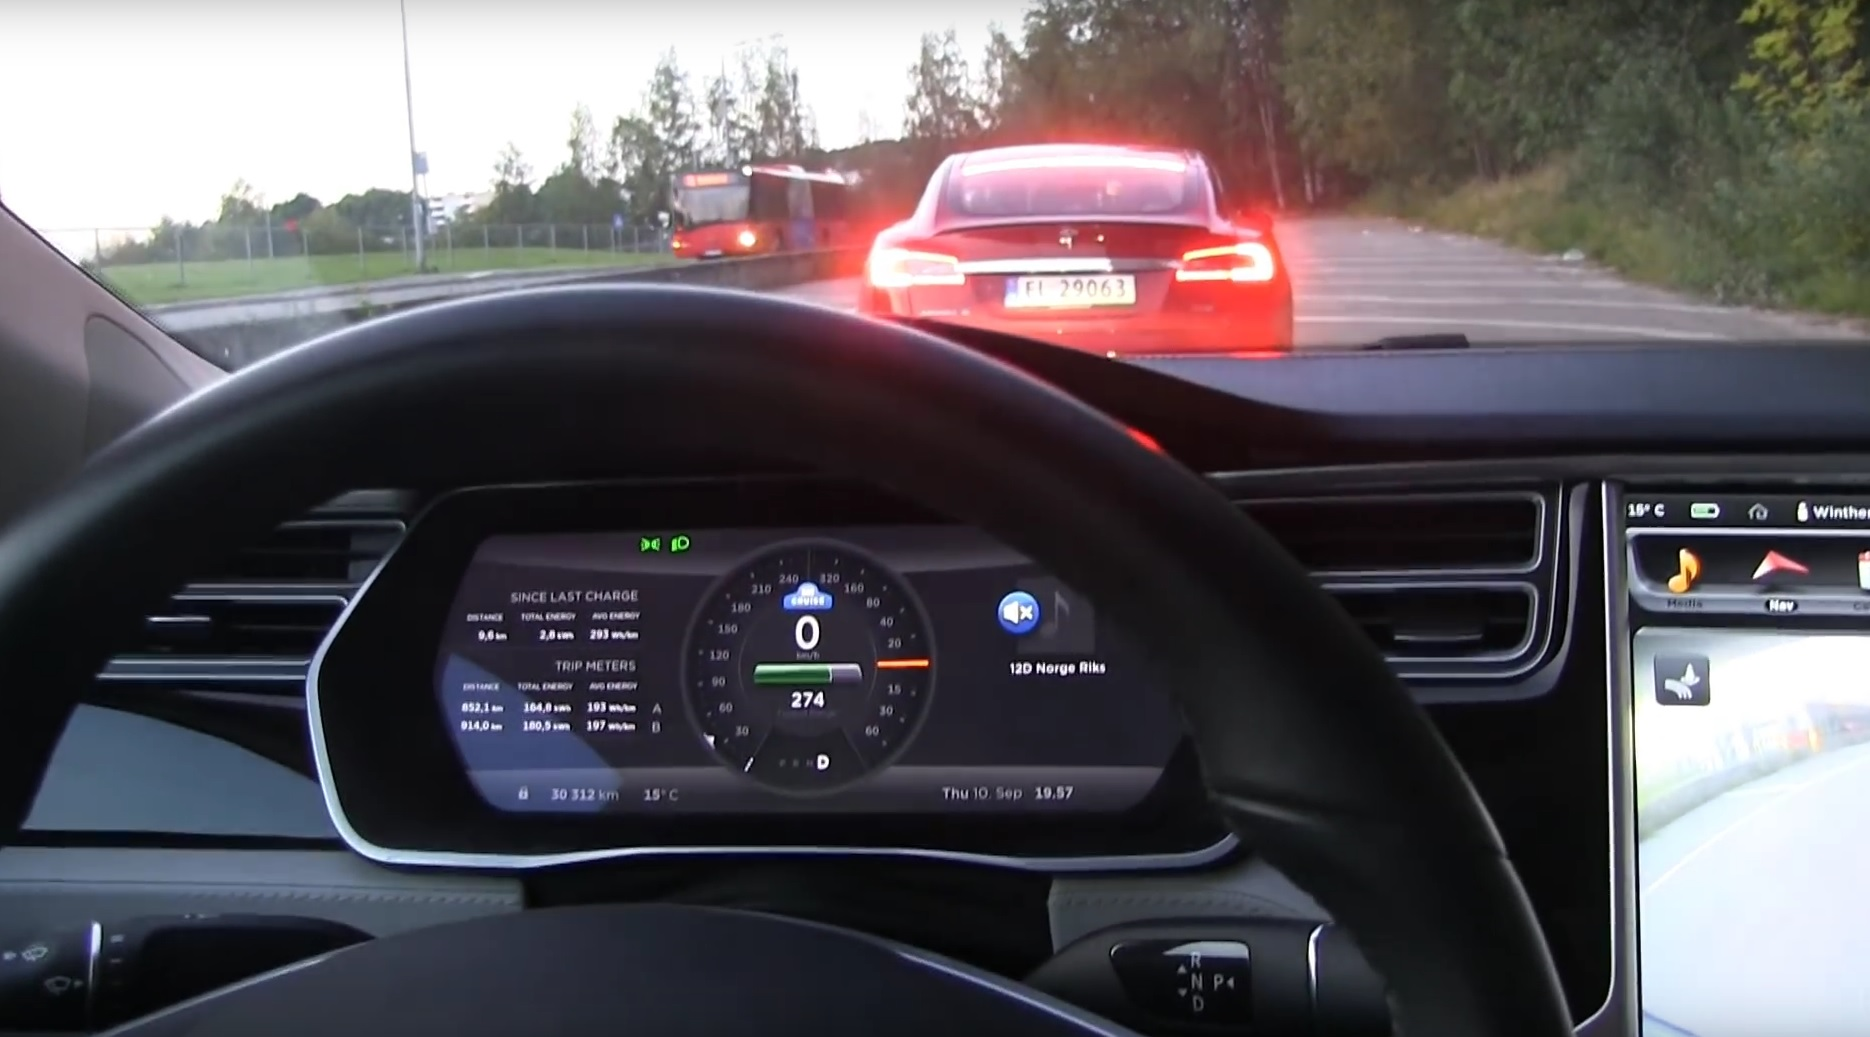 Tesla to Restore Auto-Brakes Through Update